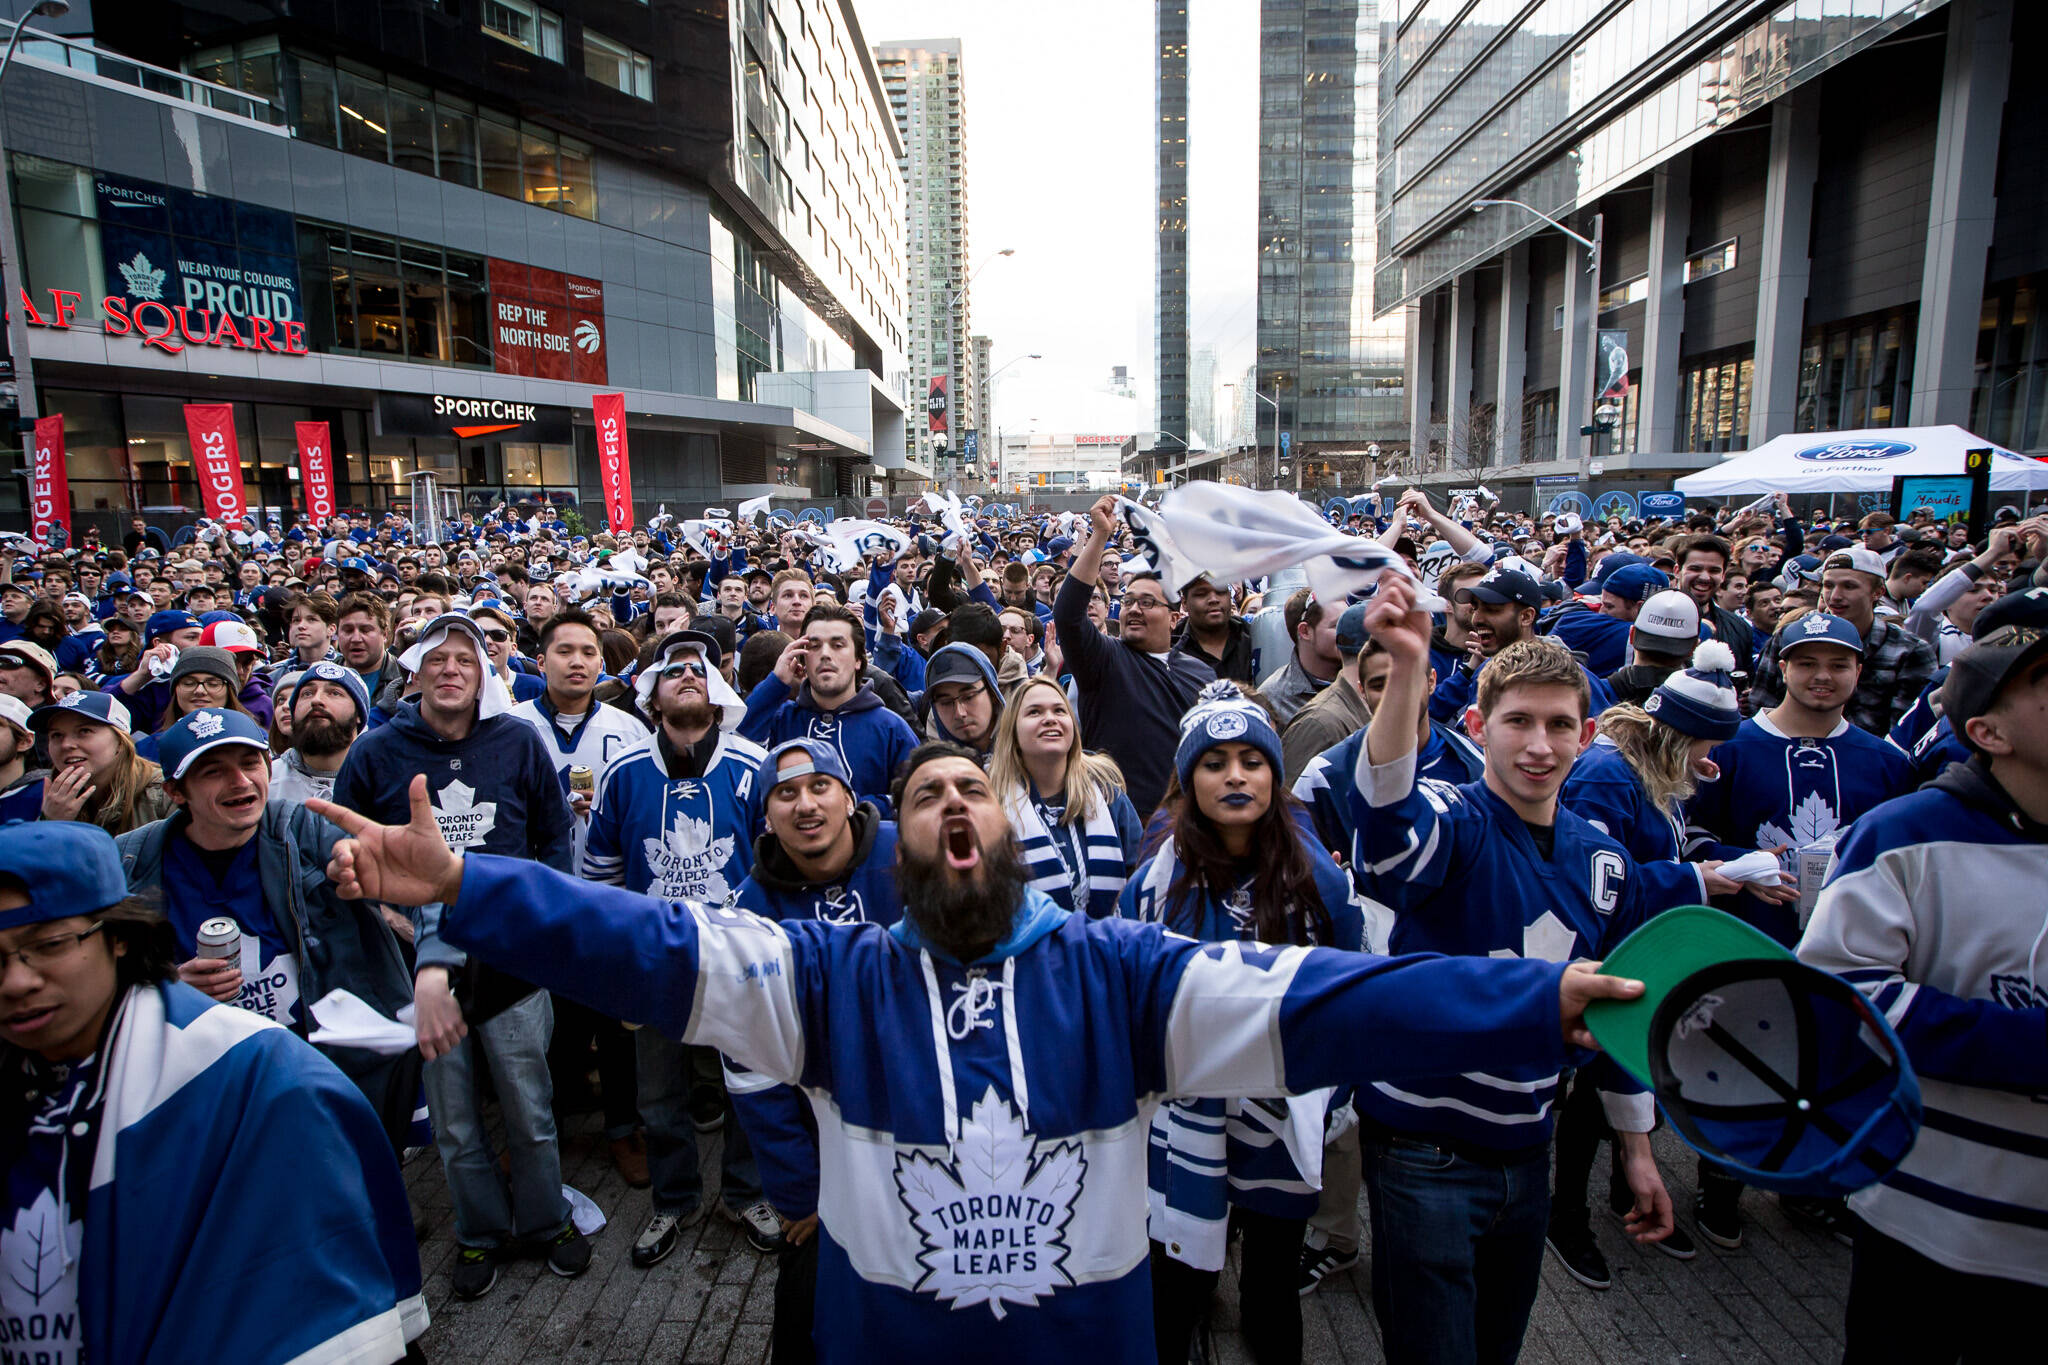 toronto maple leafs party